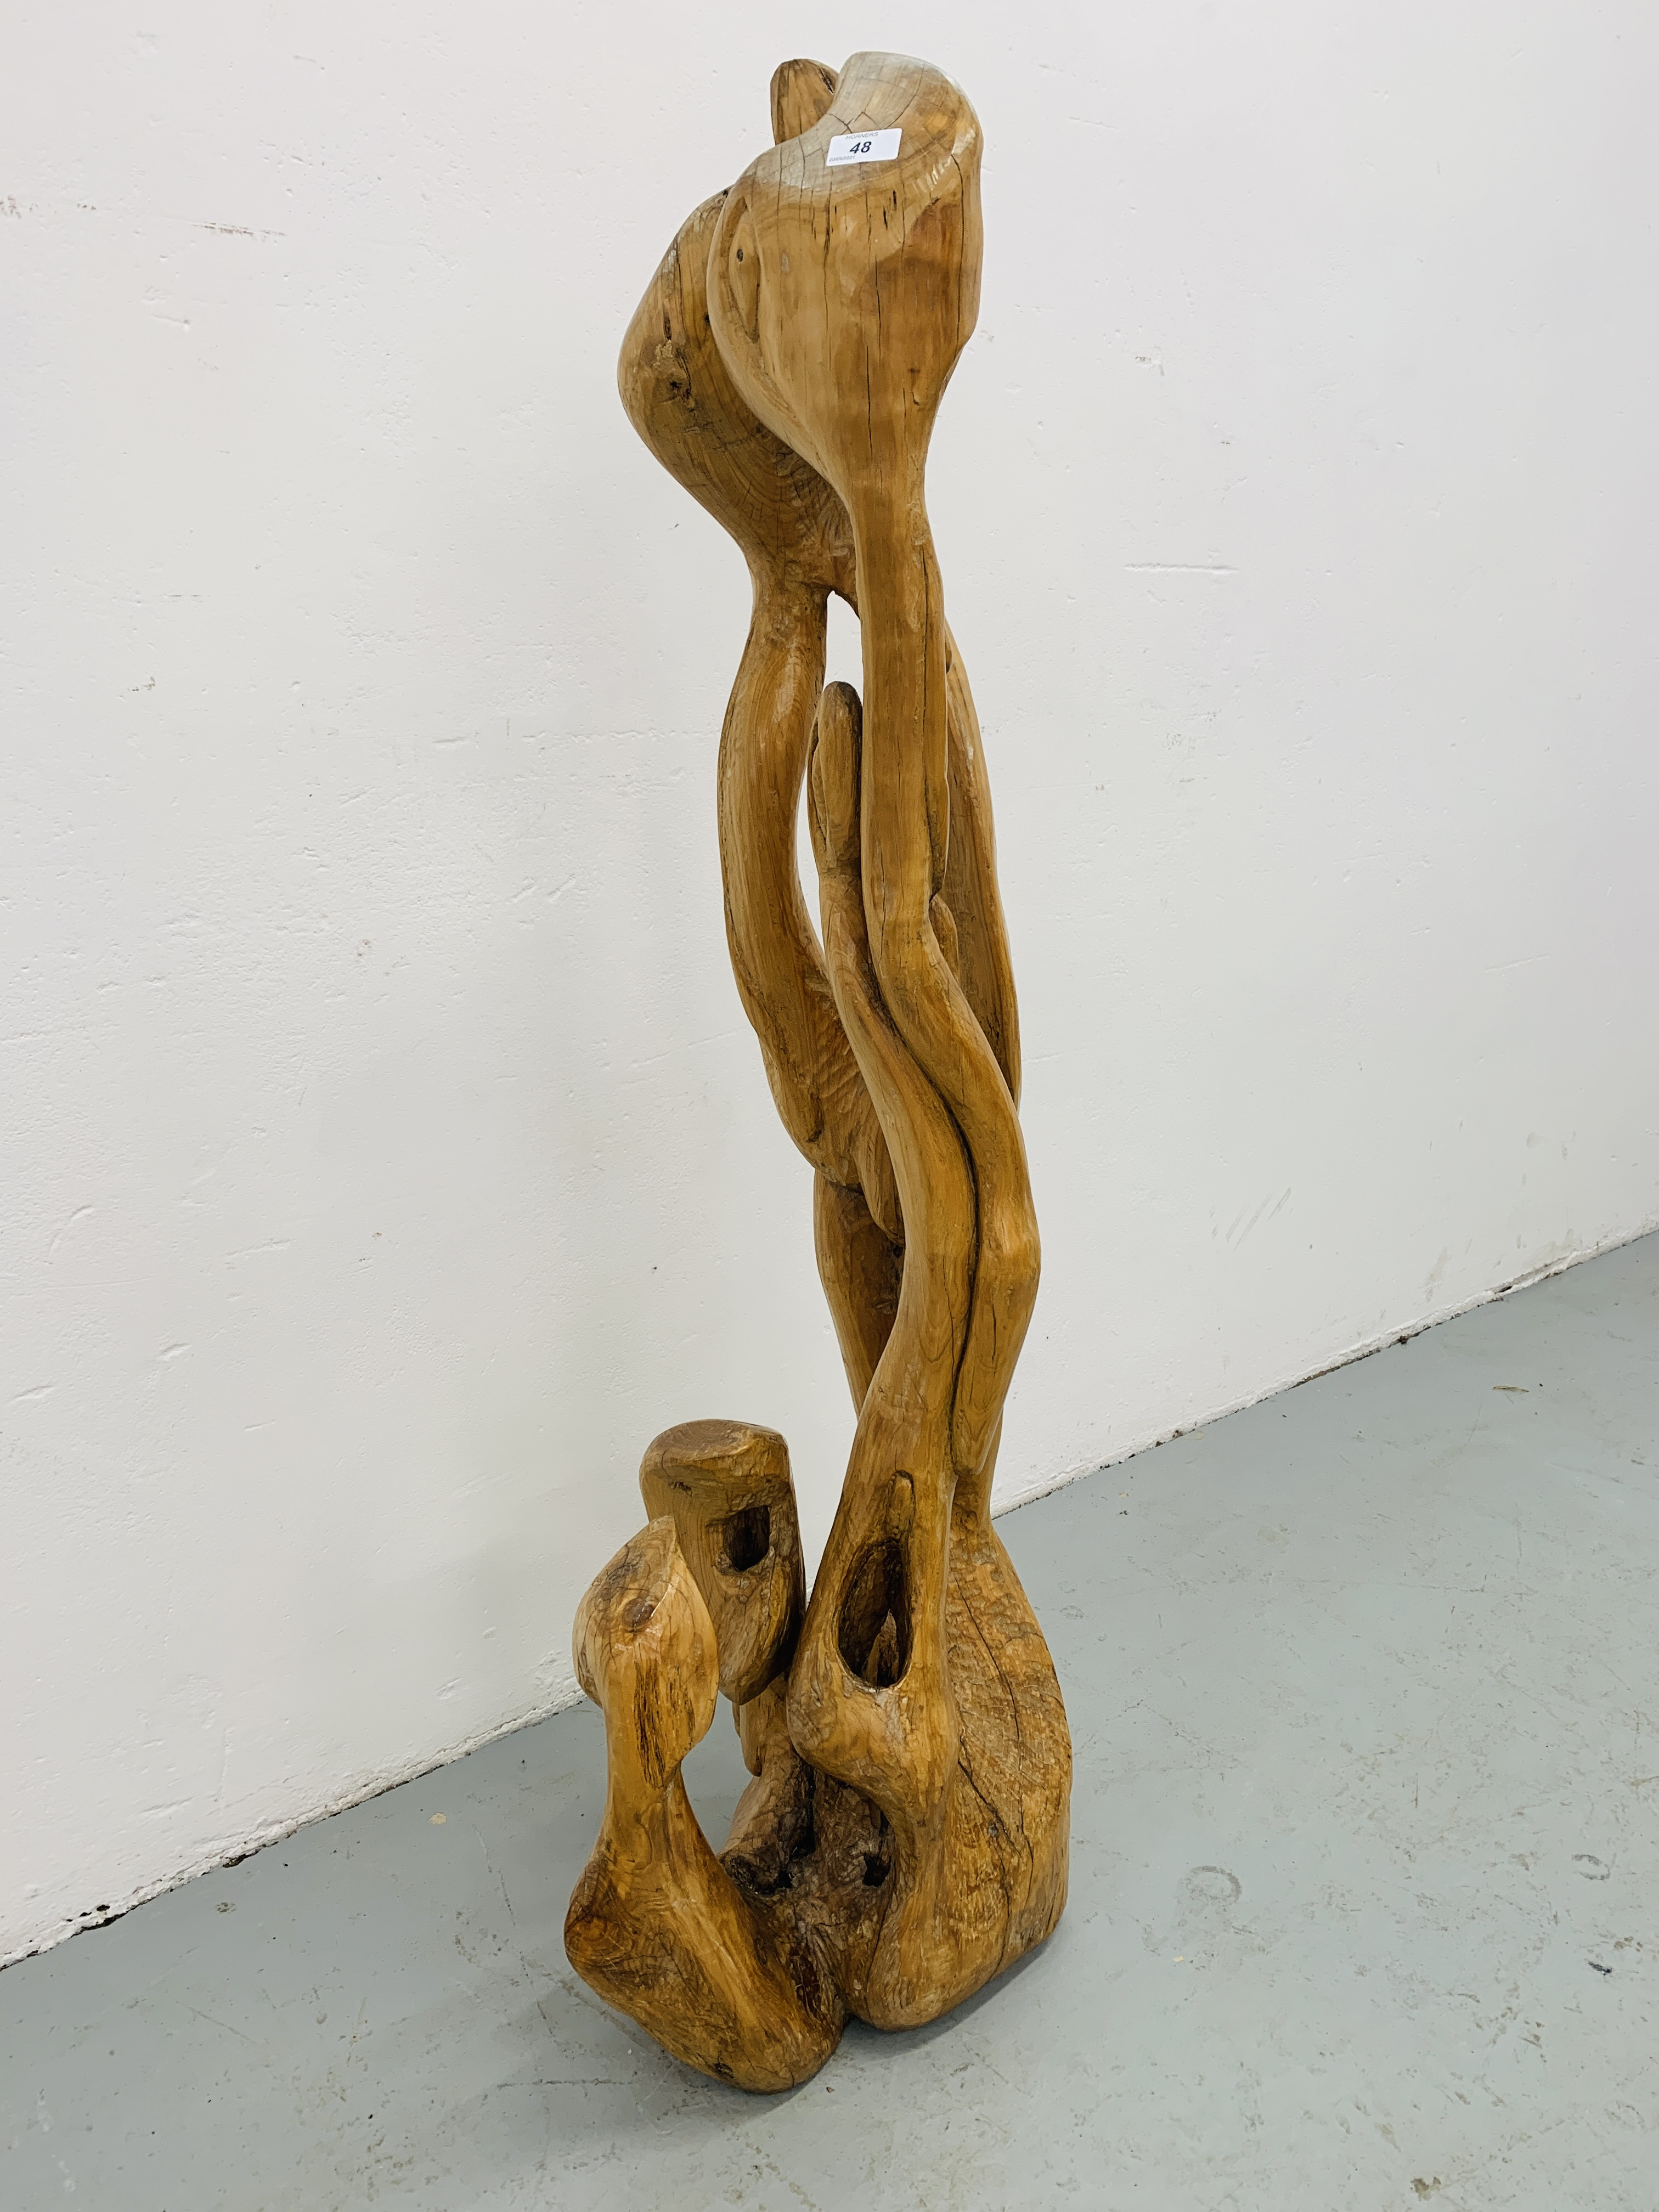 """A HARDWOOD ABSTRACT SCULPTURE """"FAMILY"""" BY P.T. - Image 2 of 9"""